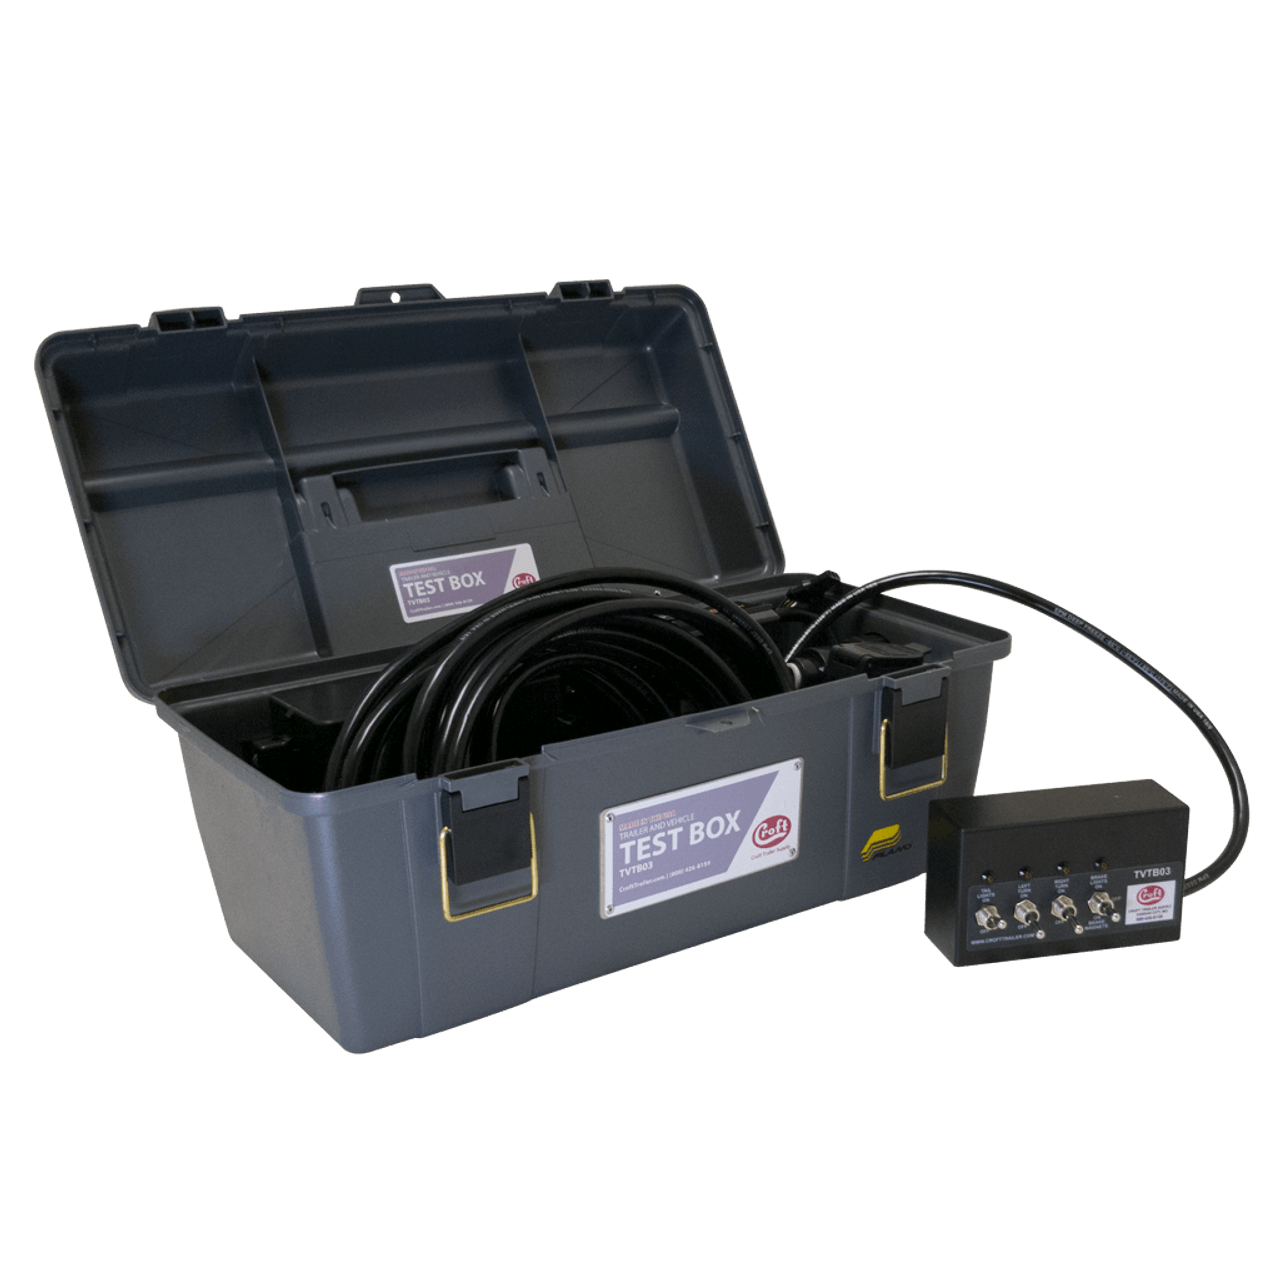 tvtb03 trailer and vehicle test box lights electric brakes and vehicle connector croft trailer supply [ 1024 x 1024 Pixel ]